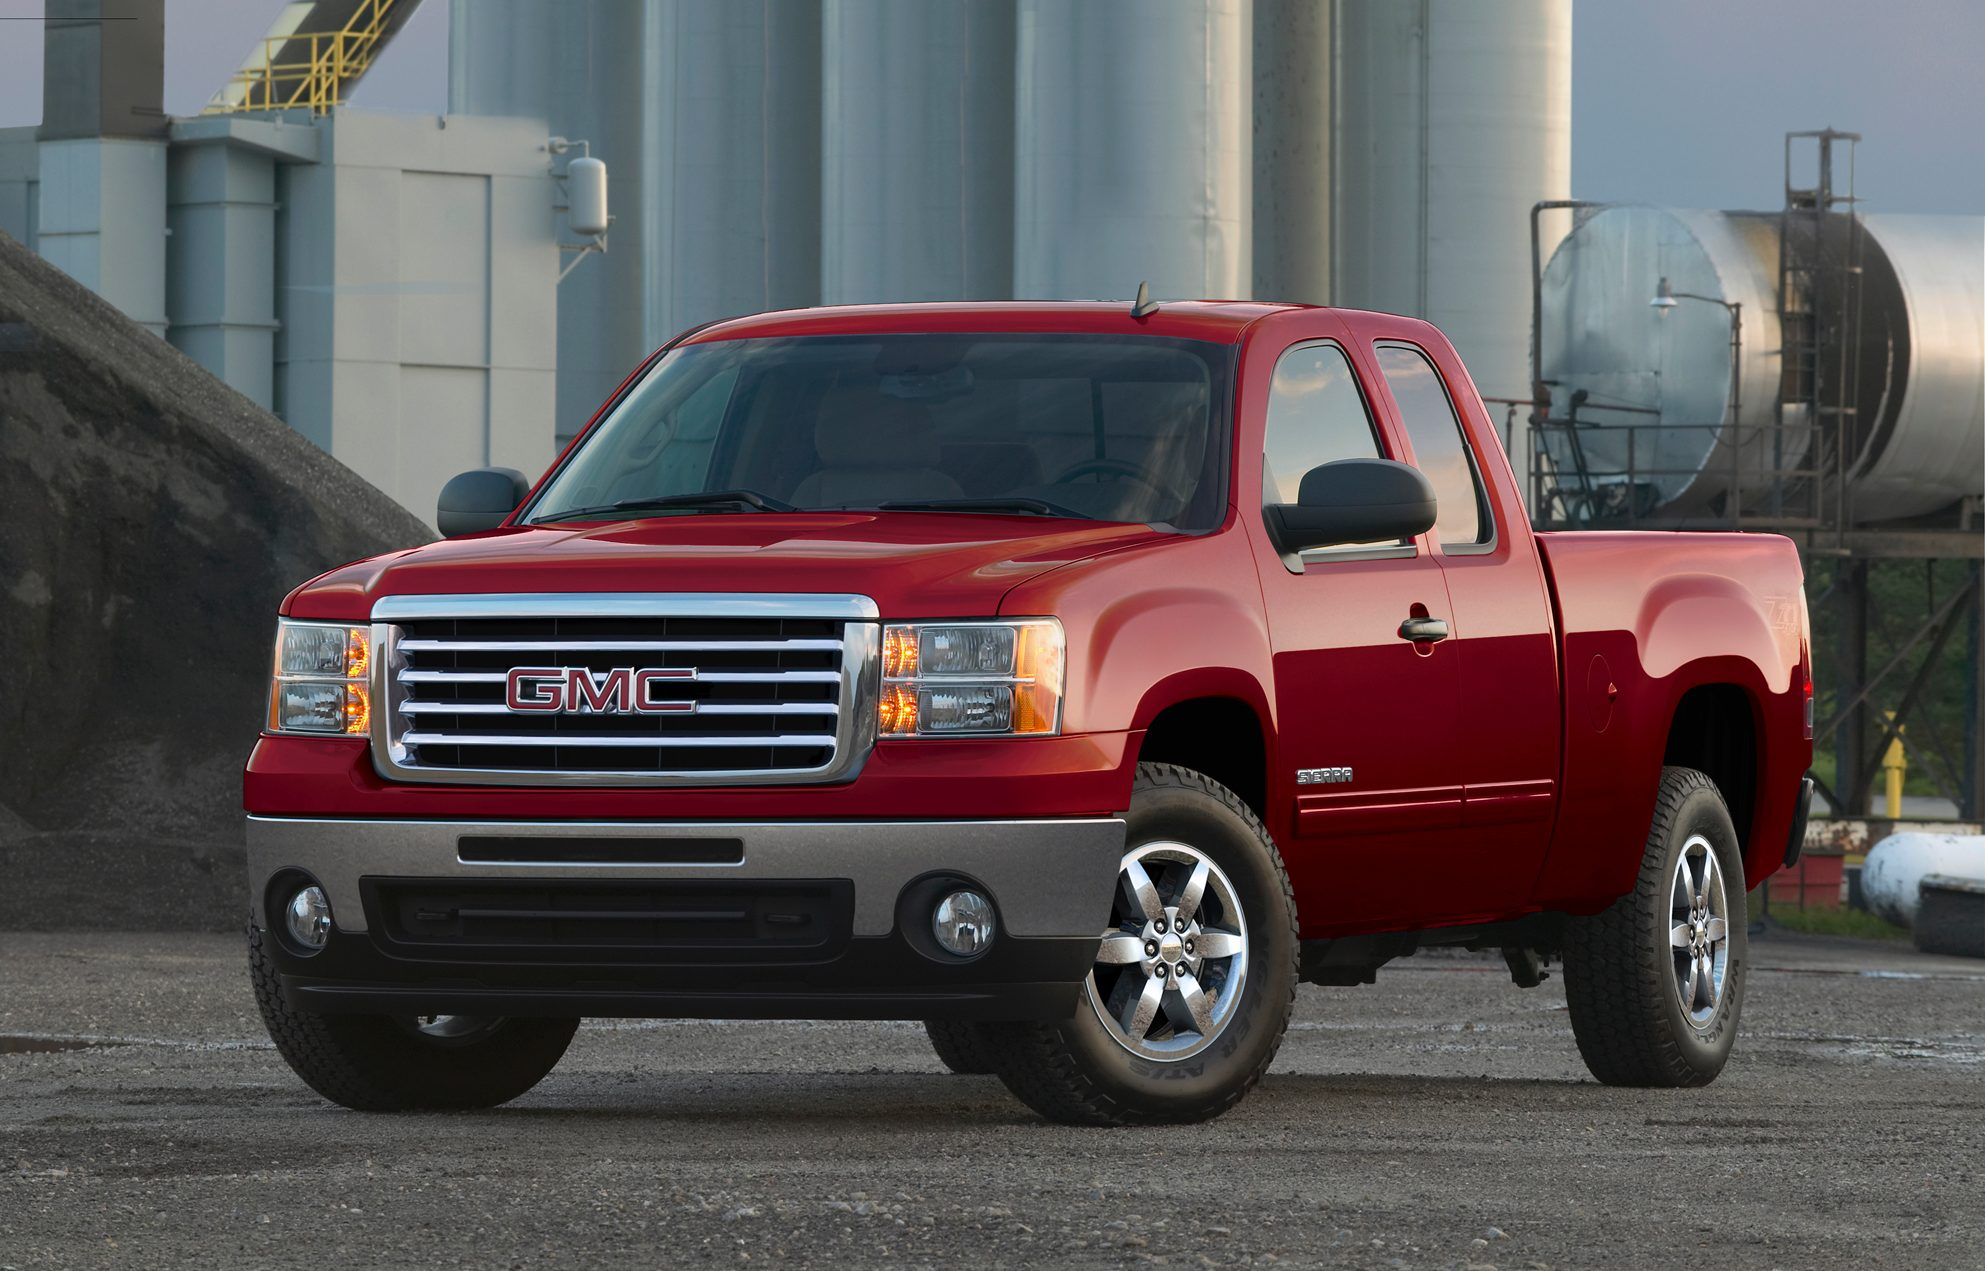 review reviews hp sierra is gmc of crew liter produces article that denali torque a autoweek lb equipped notes car cab ft with